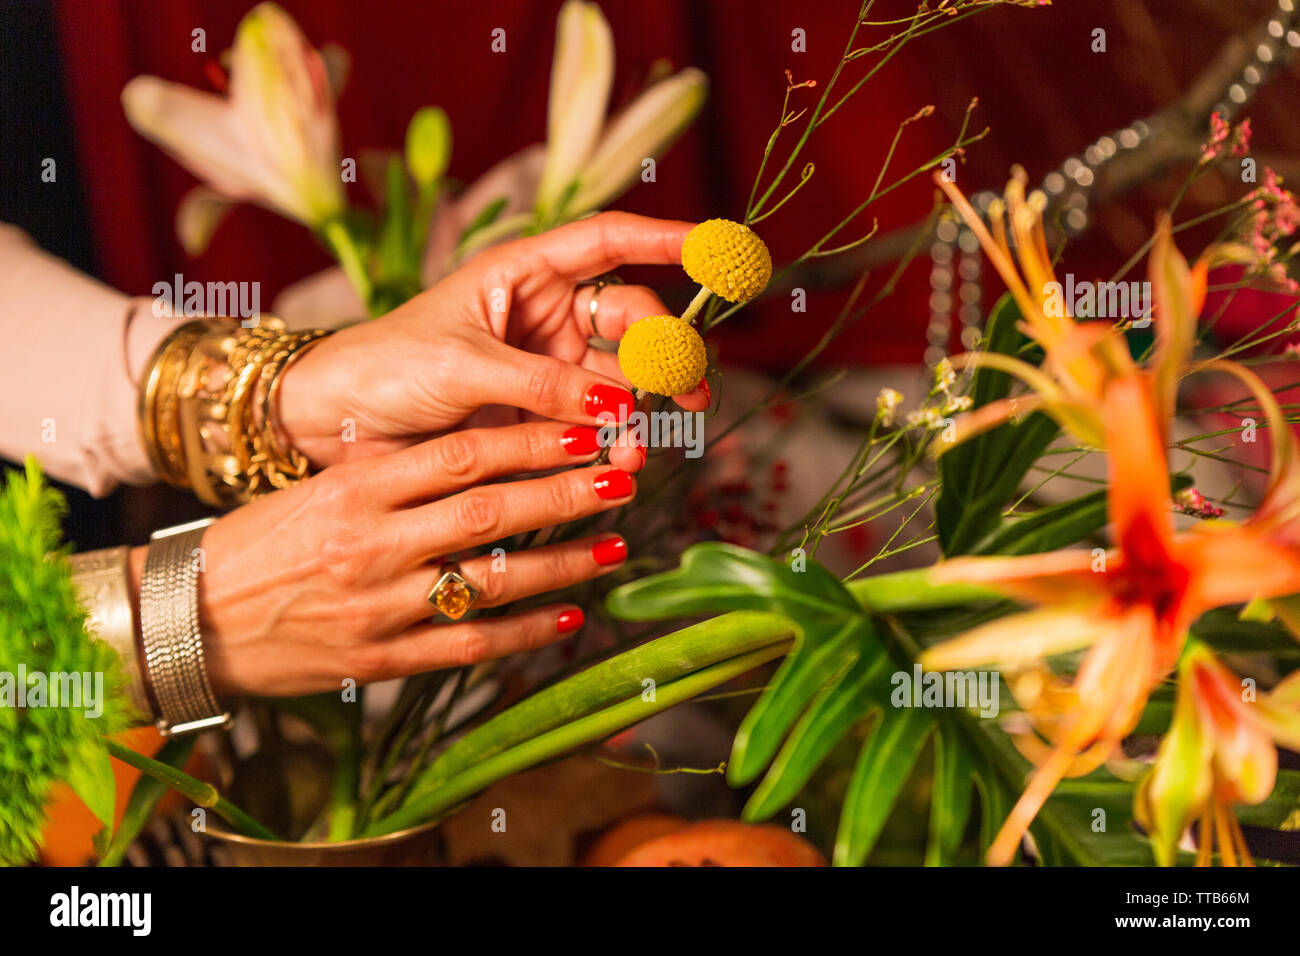 Hand holding flowers in front of autumn crops Stock Photo